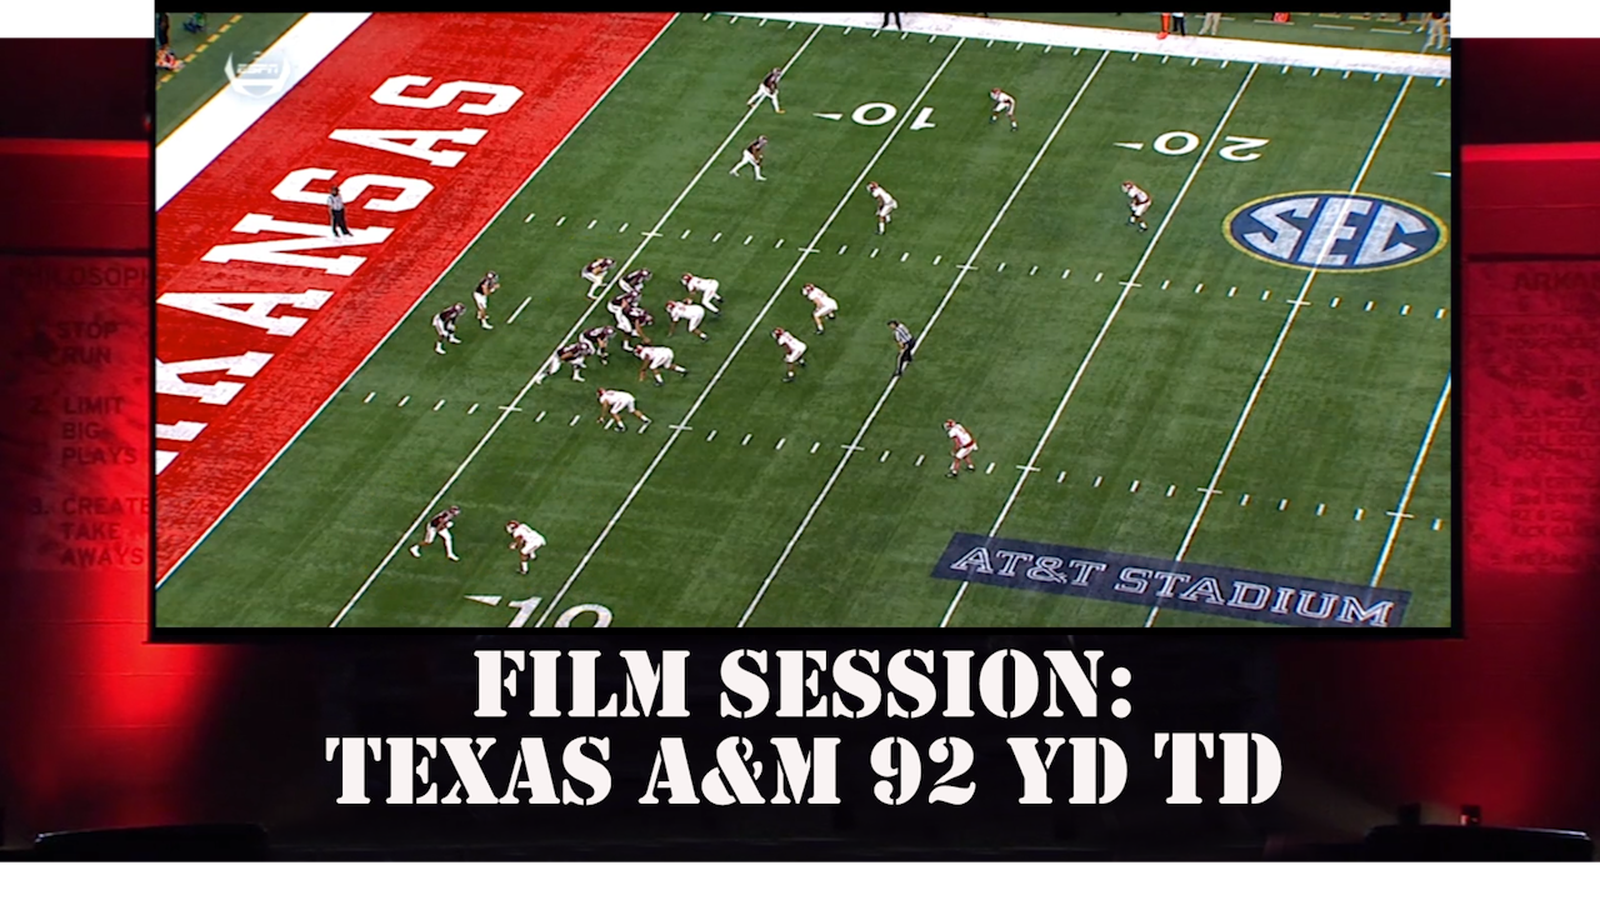 Film Room Session Vs Texas A&M: Part 1 Breaking Down the 92 YD TD - Arkansas Fight